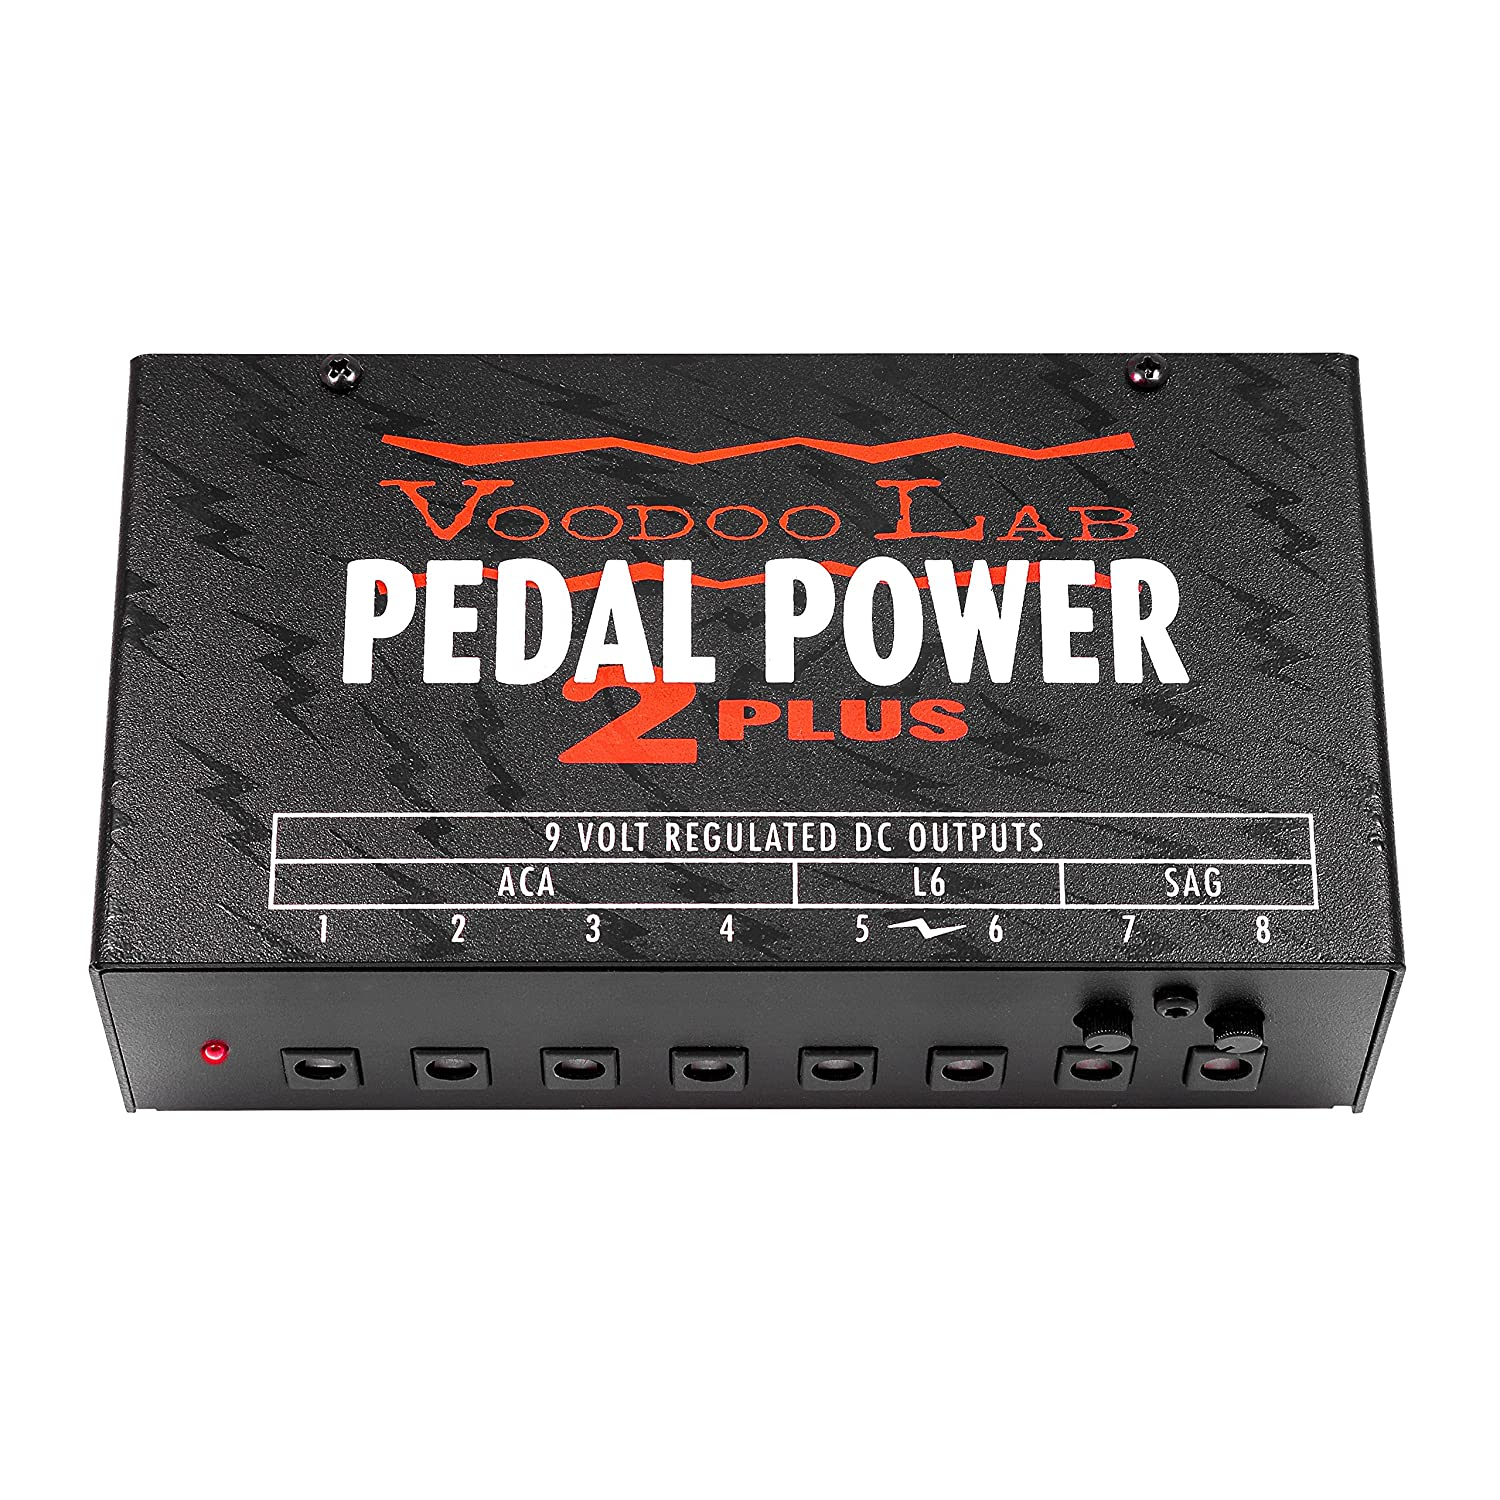 the best pedalboard power supply on 2018 a beginner s guide. Black Bedroom Furniture Sets. Home Design Ideas